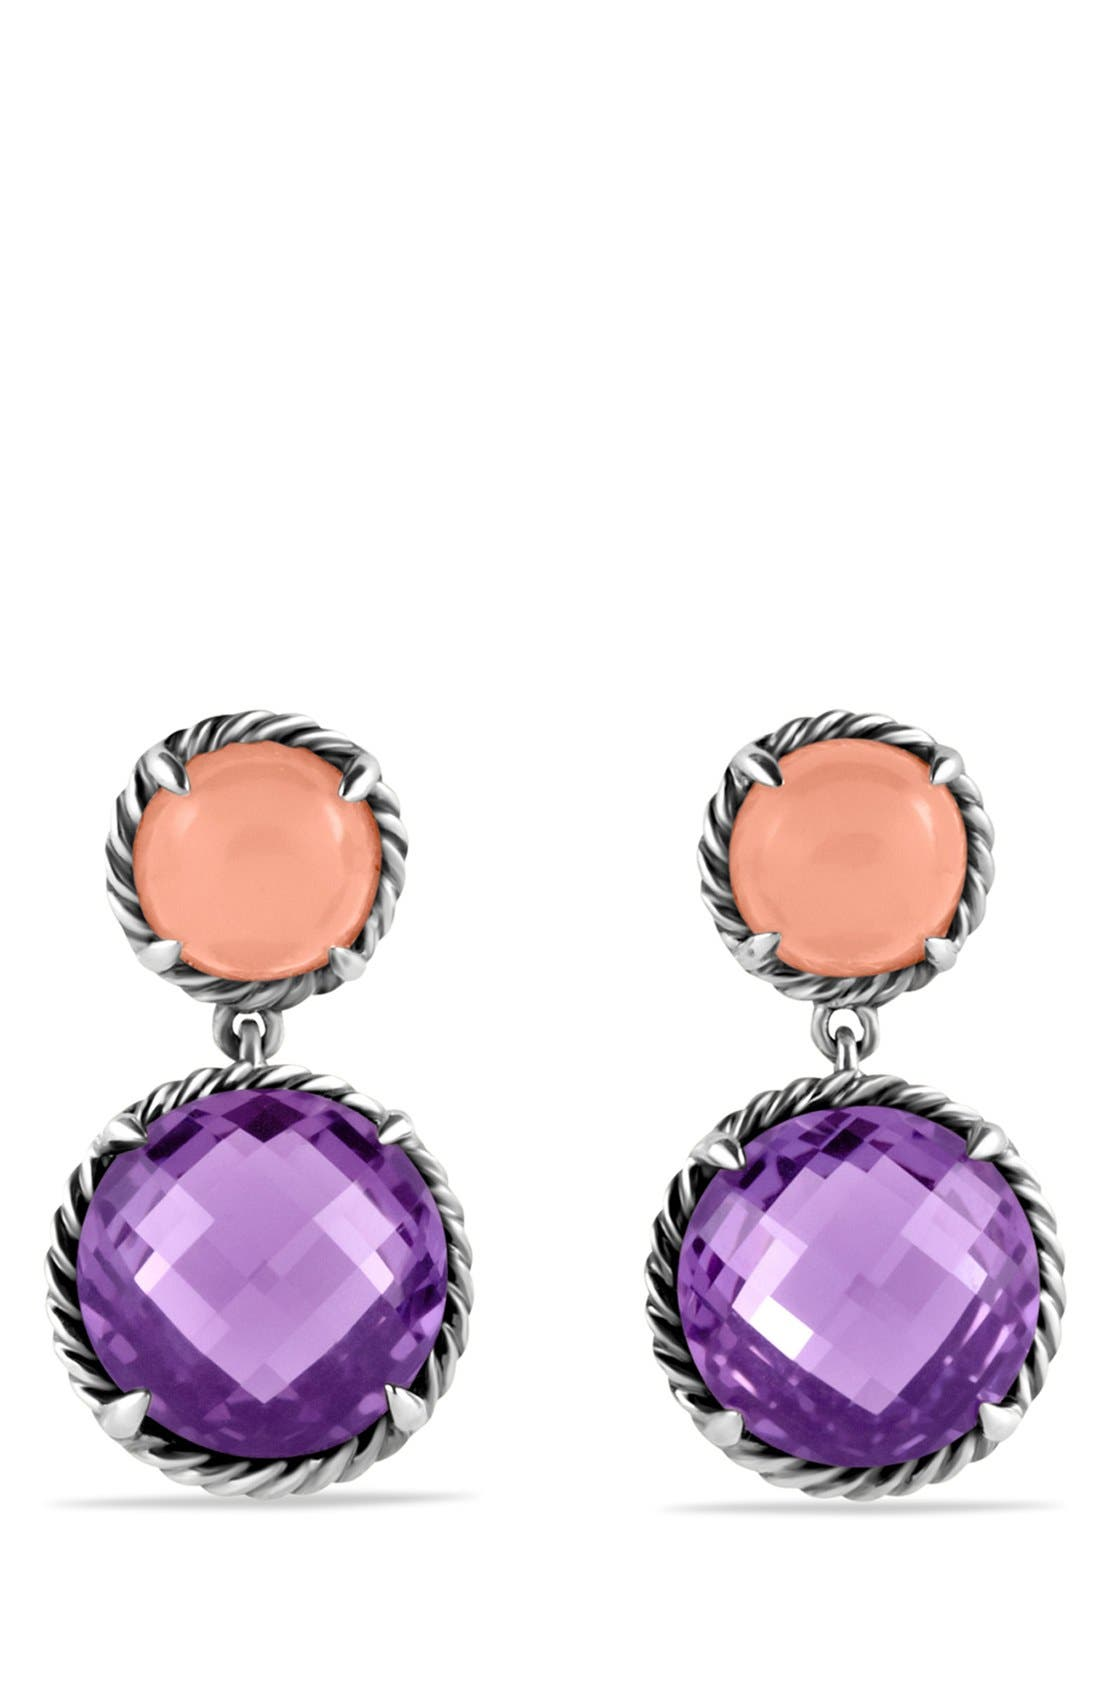 Main Image - David Yurman 'Châtelaine' Double Drop Earrings with Amethyst and Guava Quartz